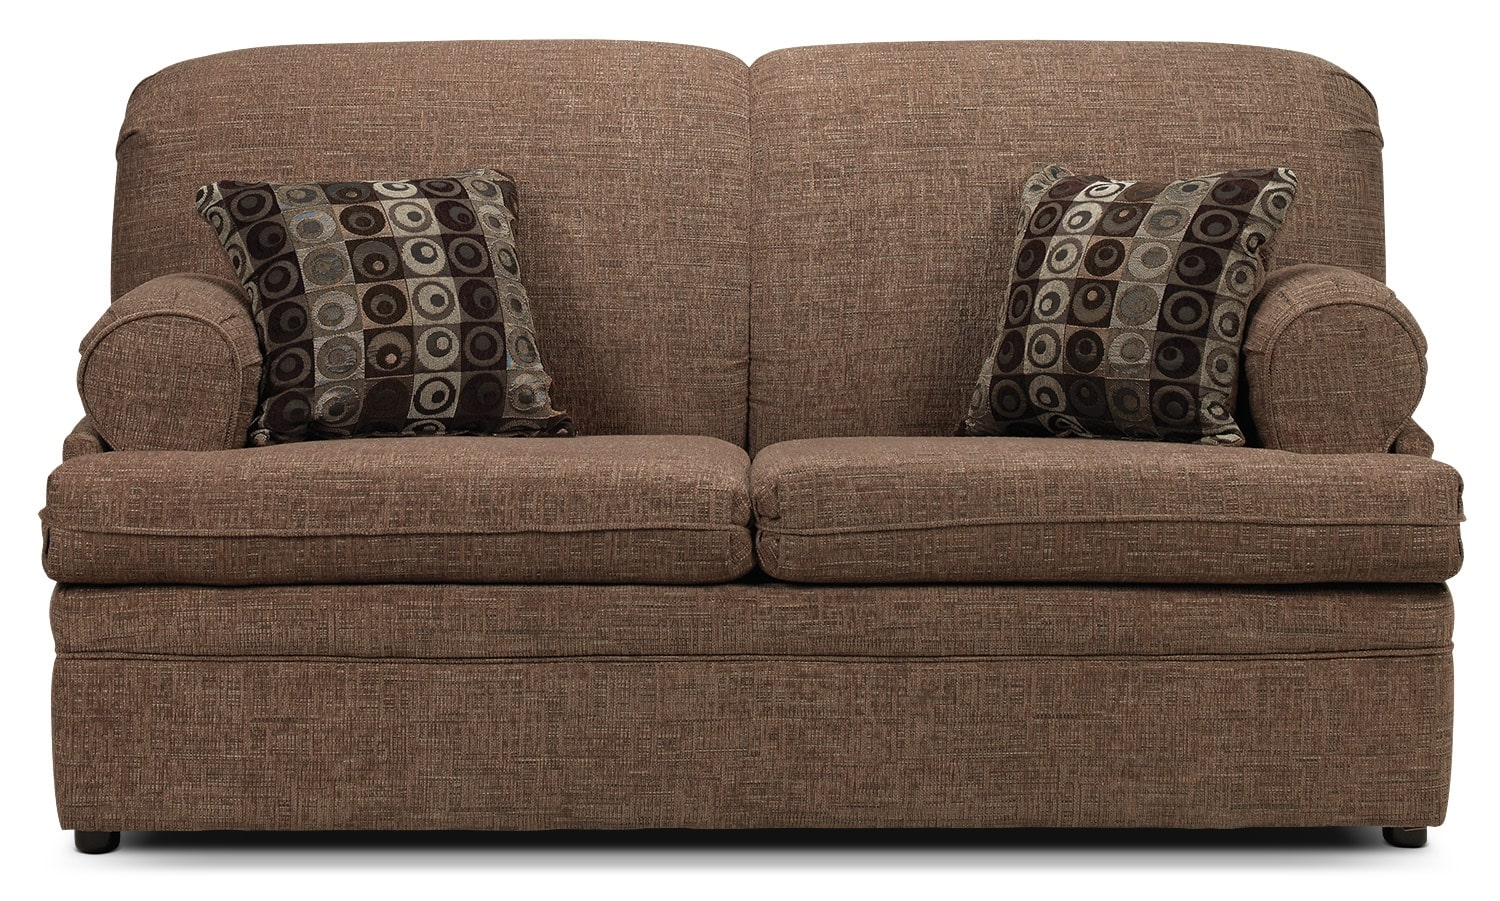 Living Room Furniture - Nichols Full Sofabed